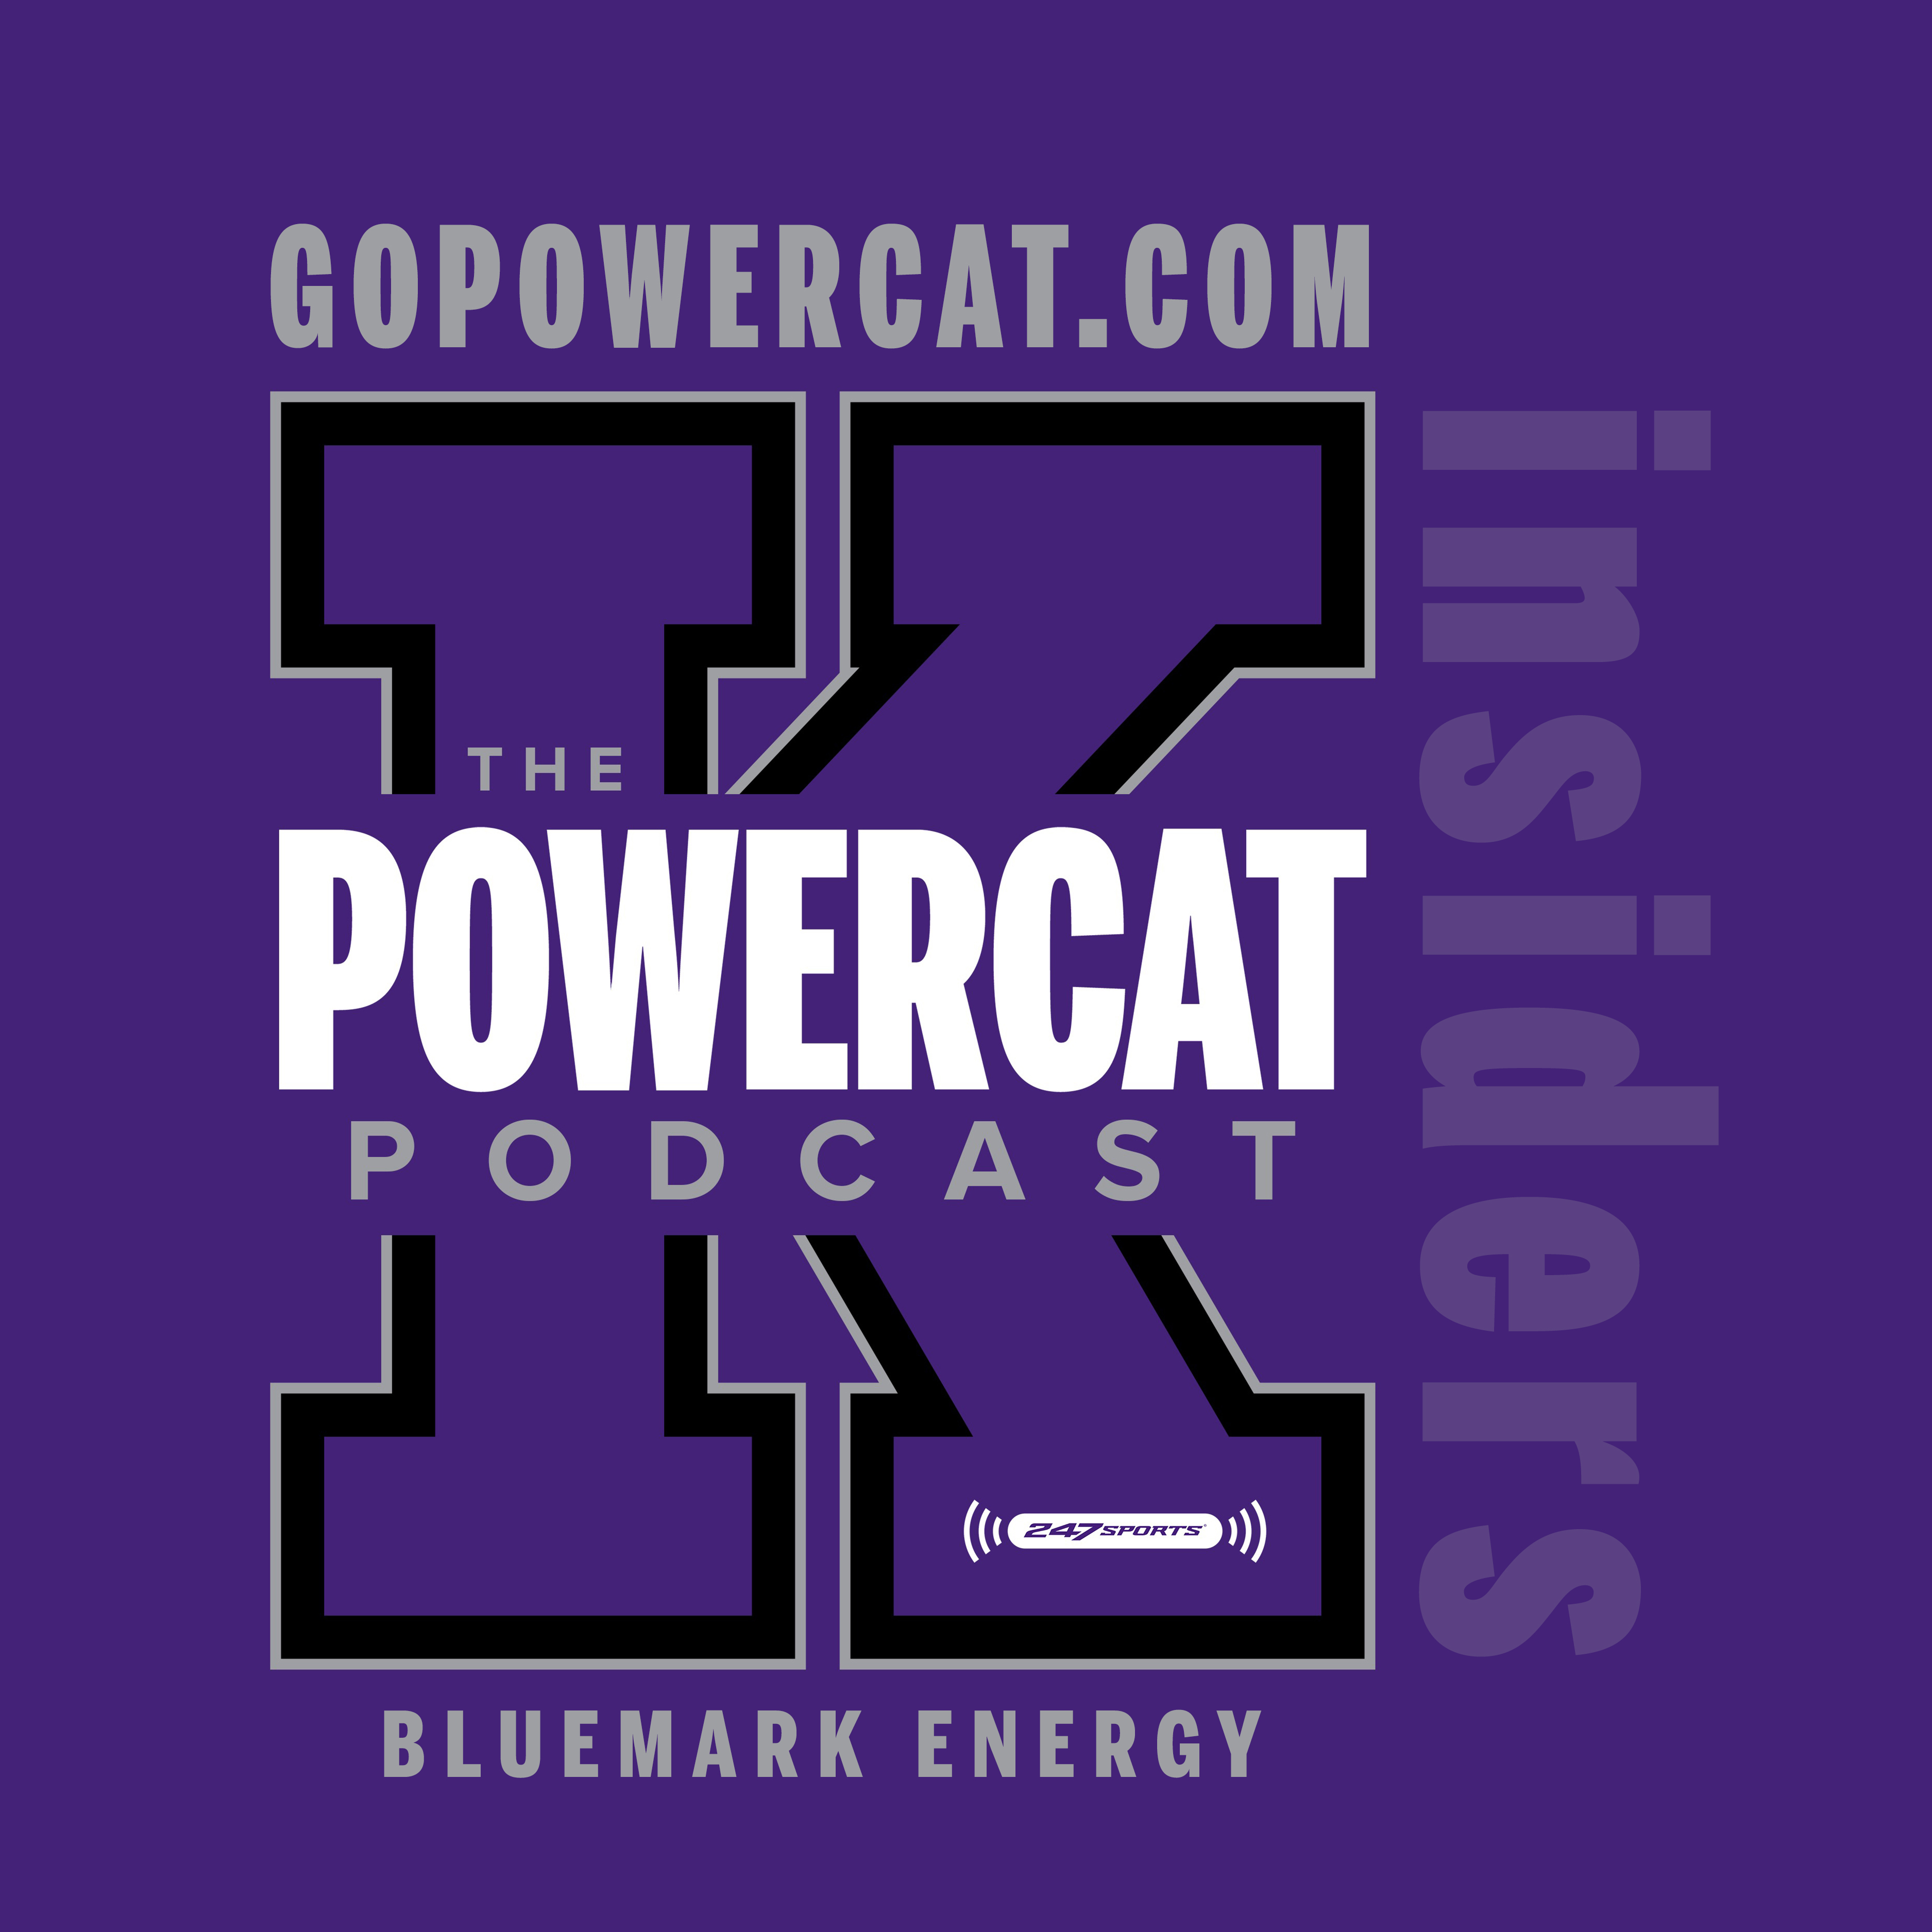 Insiders 10.26.20: Another Wildcat victory over Kansas